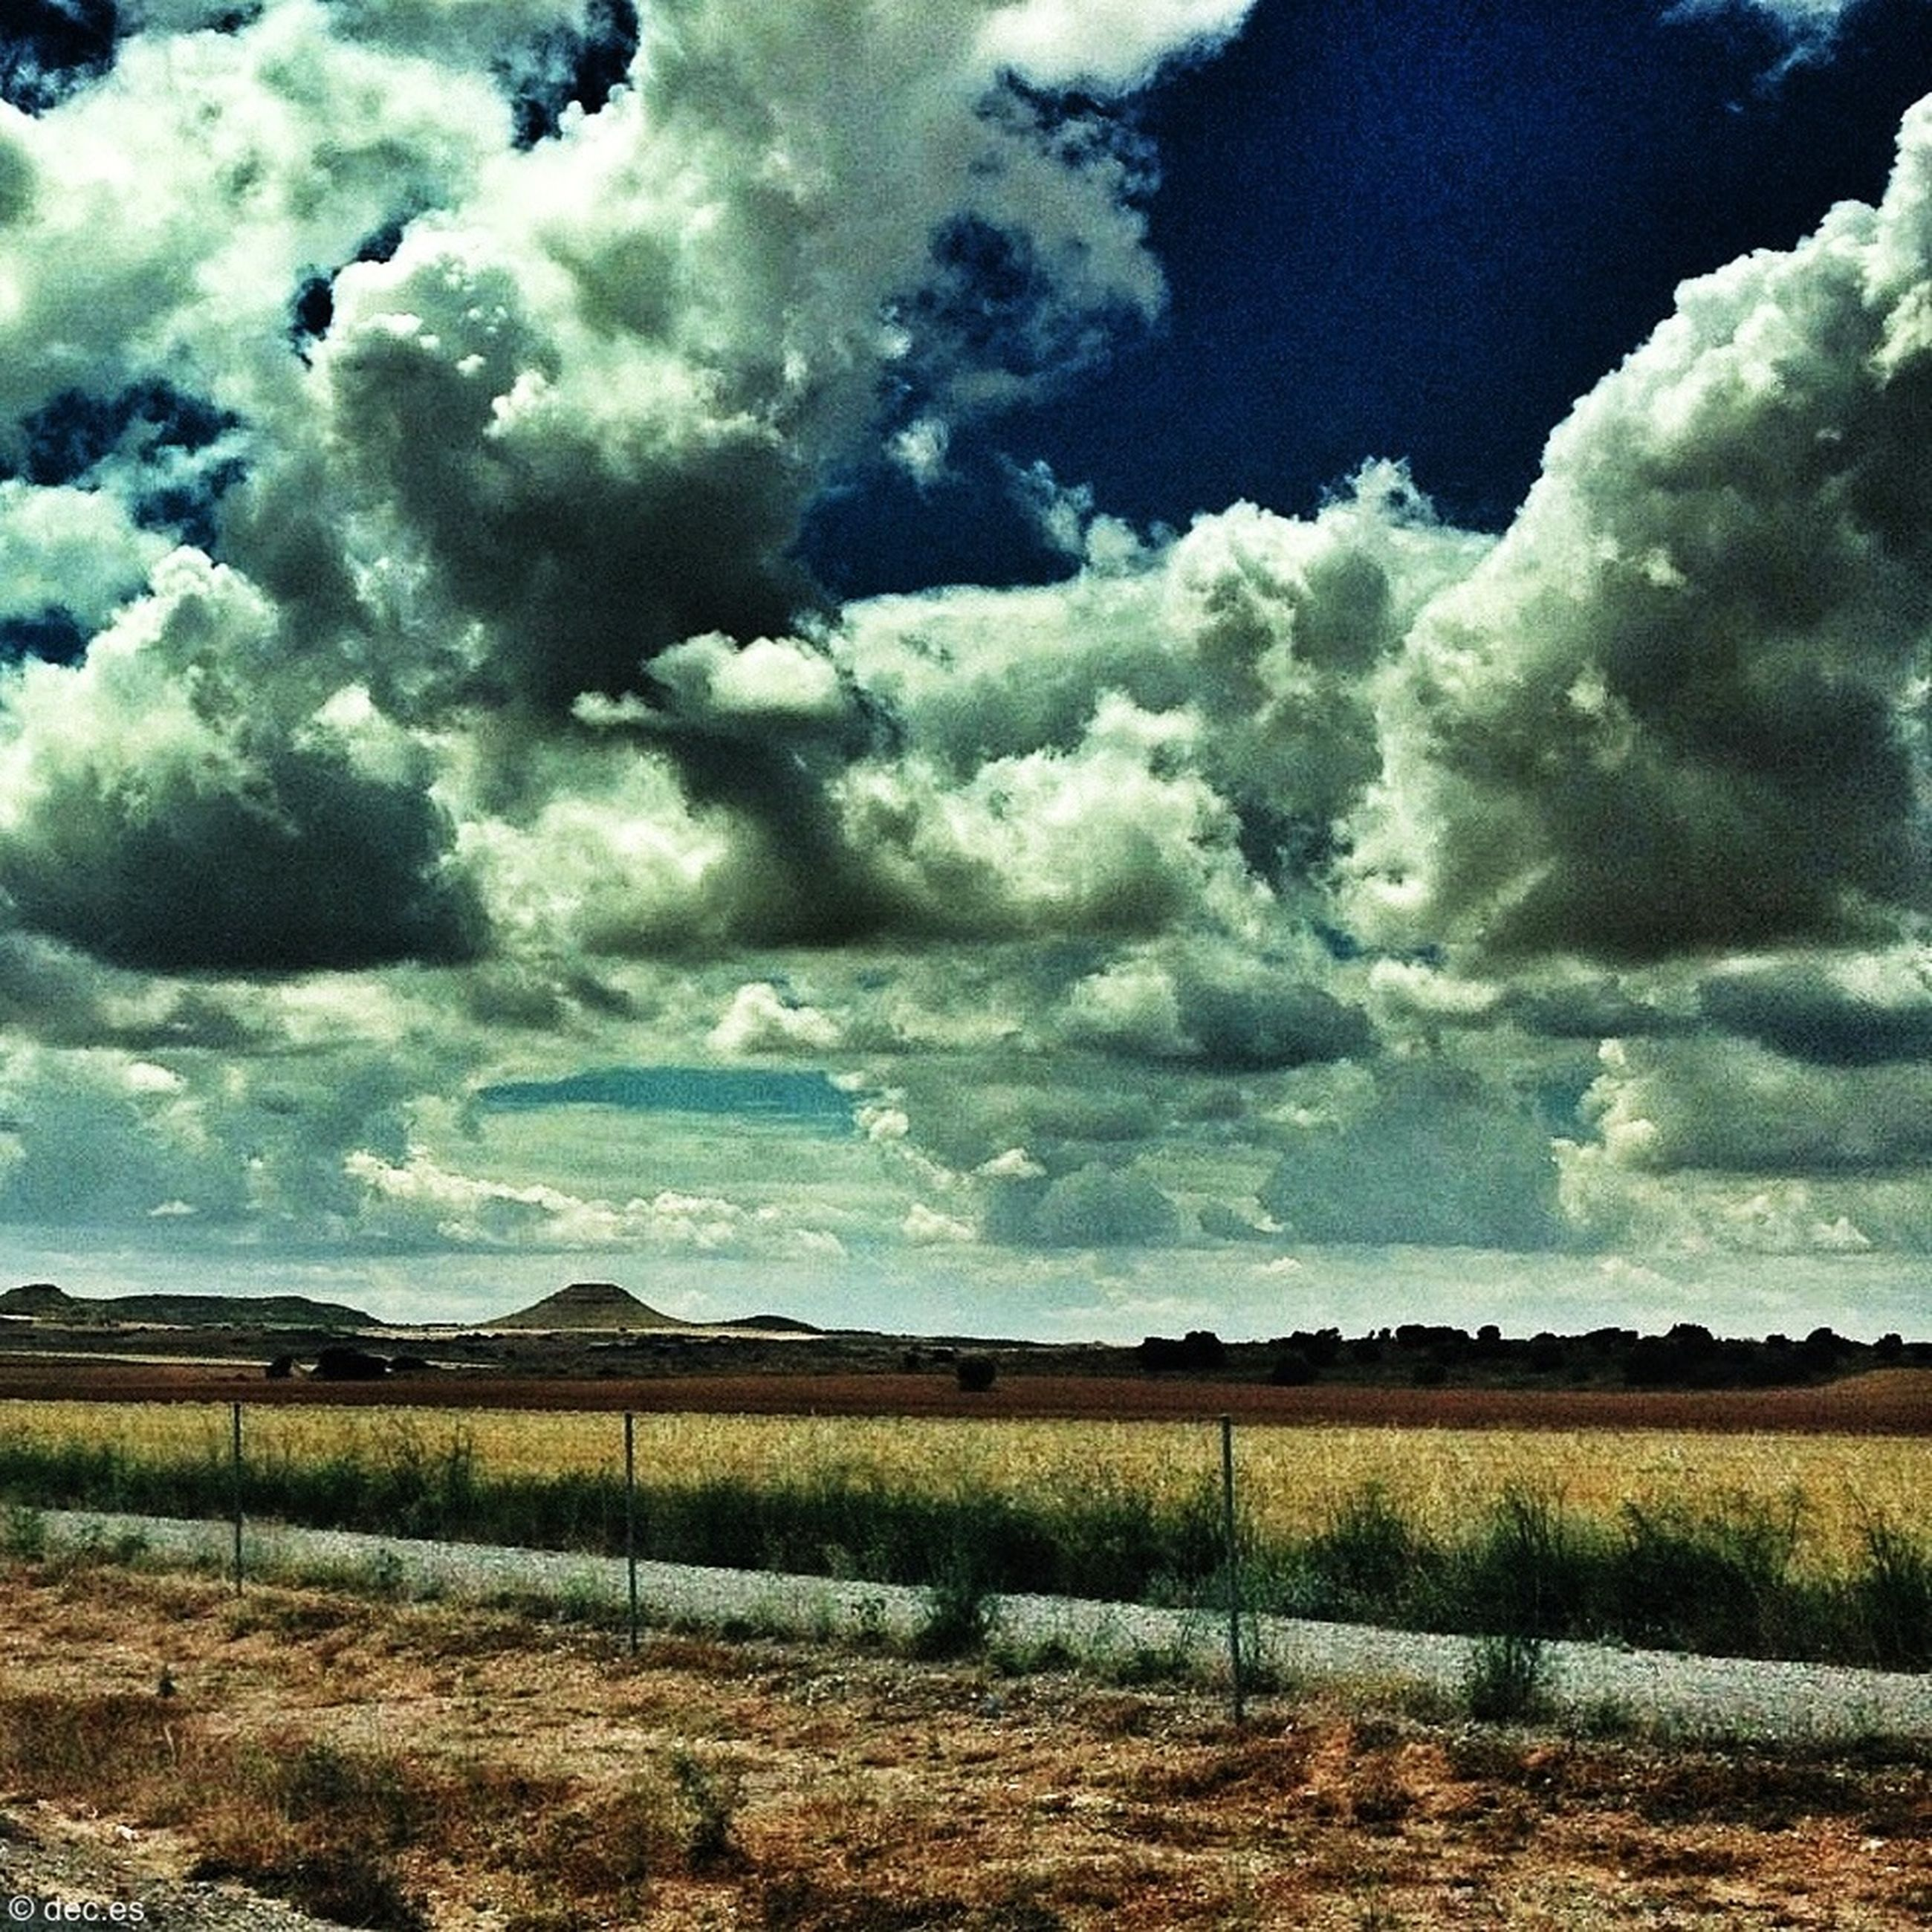 sky, cloud - sky, landscape, tranquil scene, cloudy, field, tranquility, scenics, grass, beauty in nature, cloud, nature, rural scene, weather, non-urban scene, idyllic, grassy, horizon over land, remote, outdoors